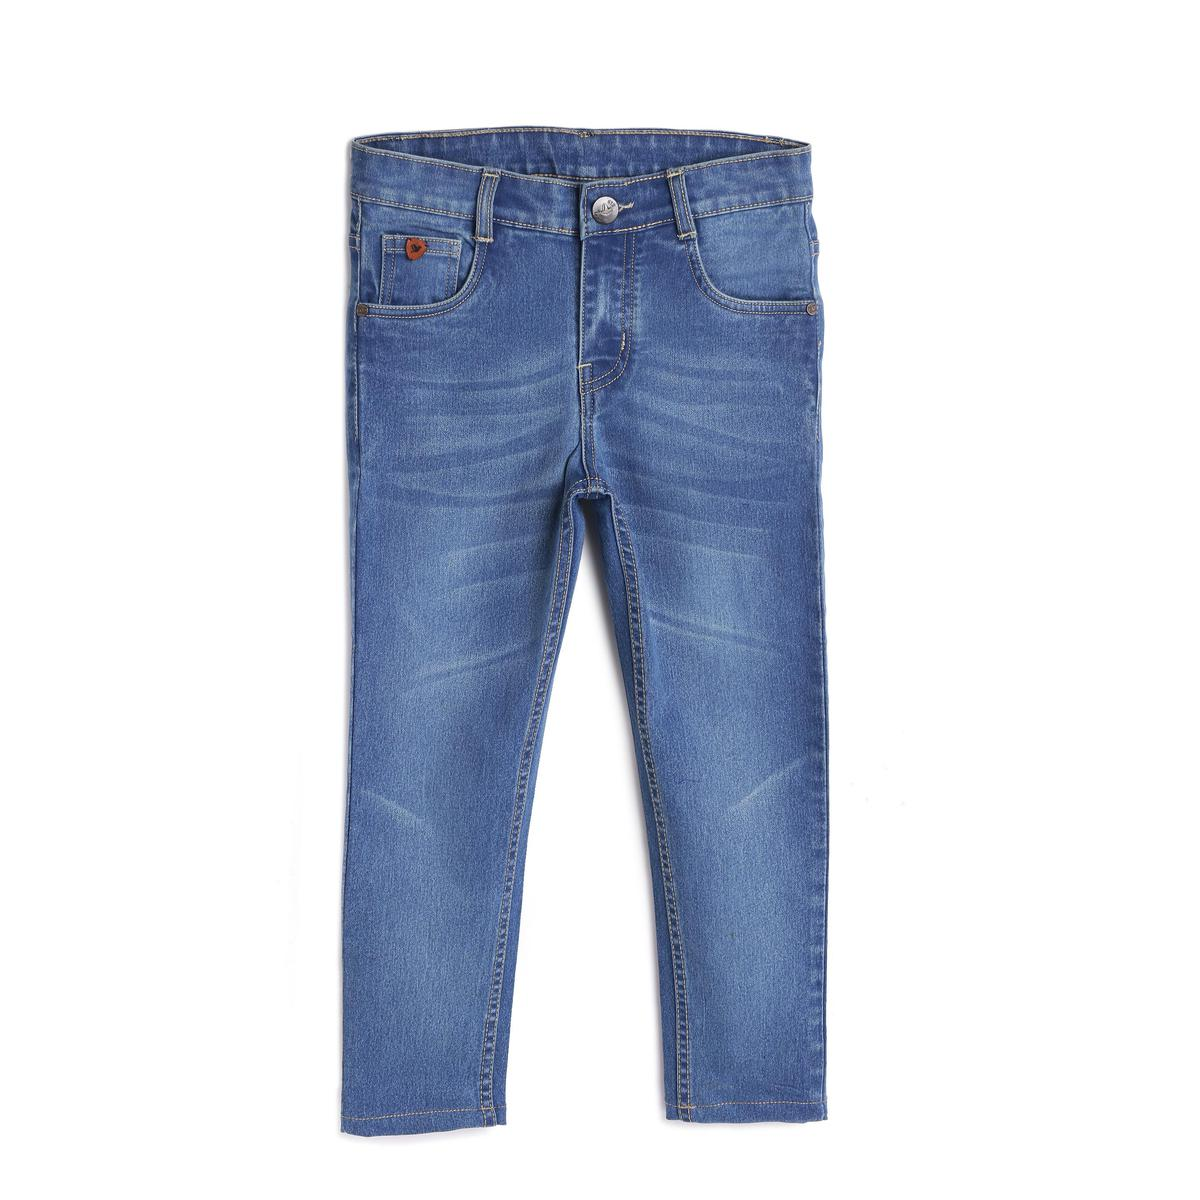 612 League - Blue Colored Distressed & Faded Basic Denim Jeans For Boys